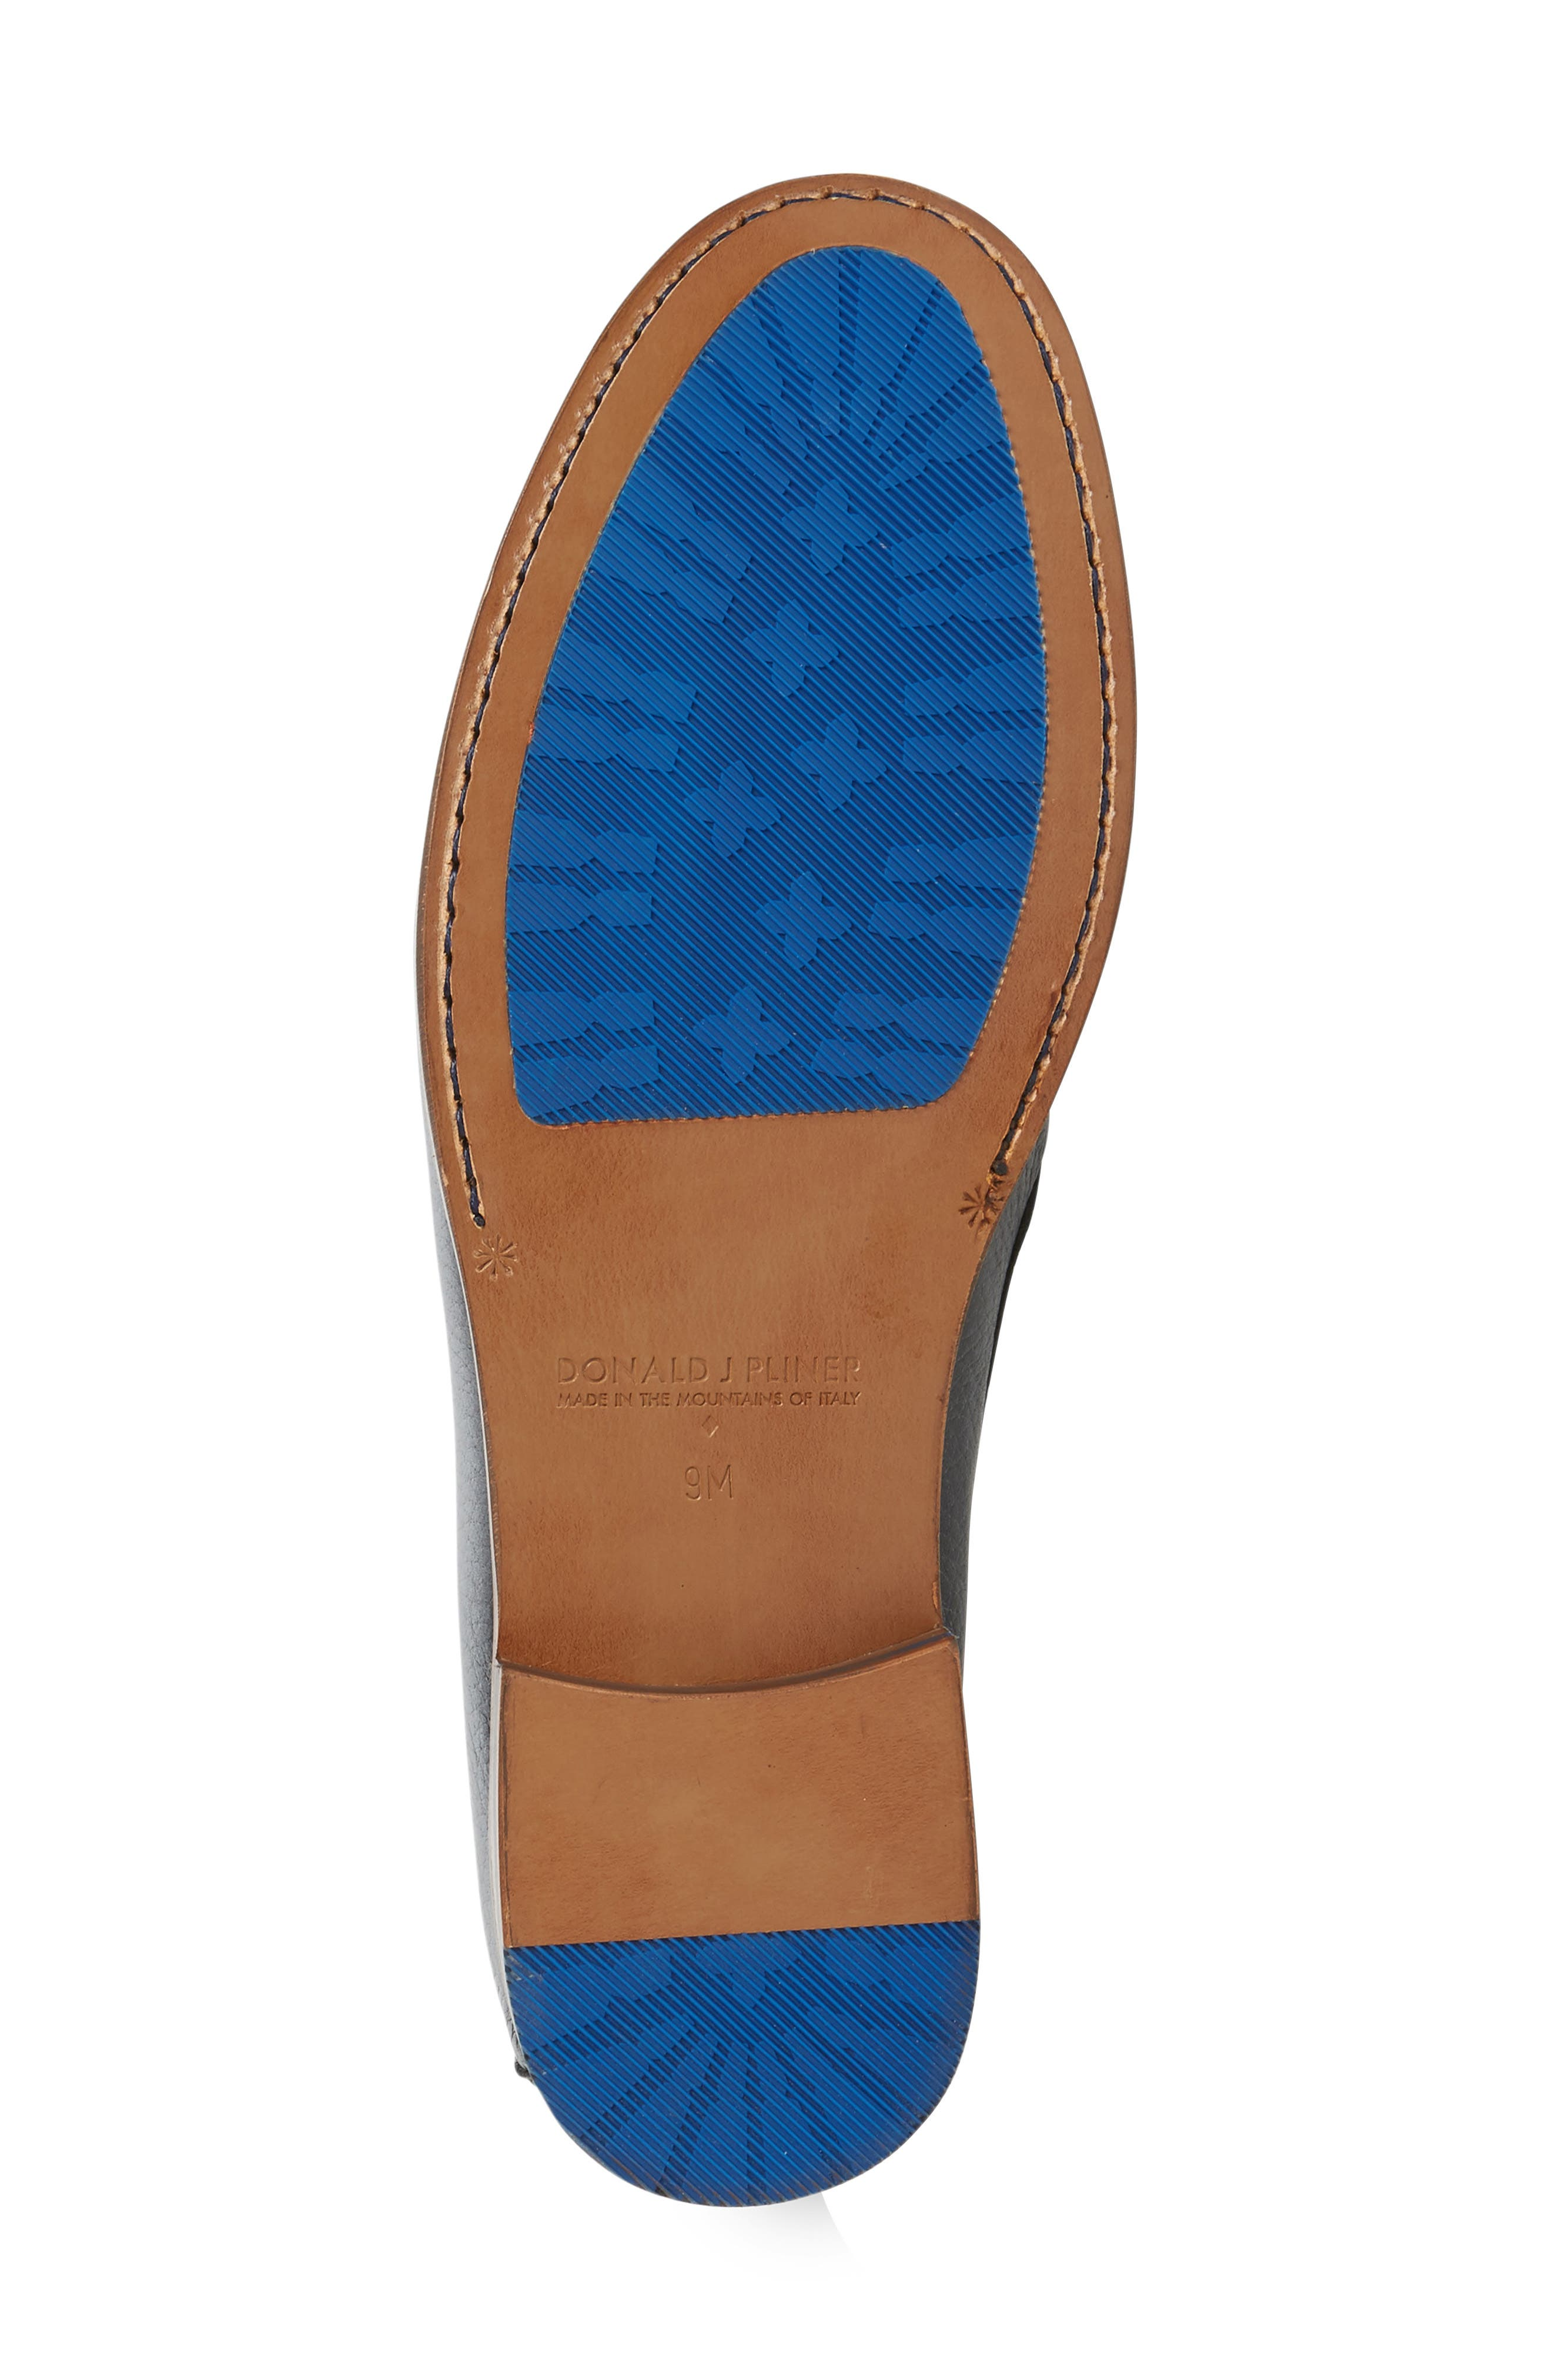 Donald J Pliner 'Nate' Loafer,                             Alternate thumbnail 16, color,